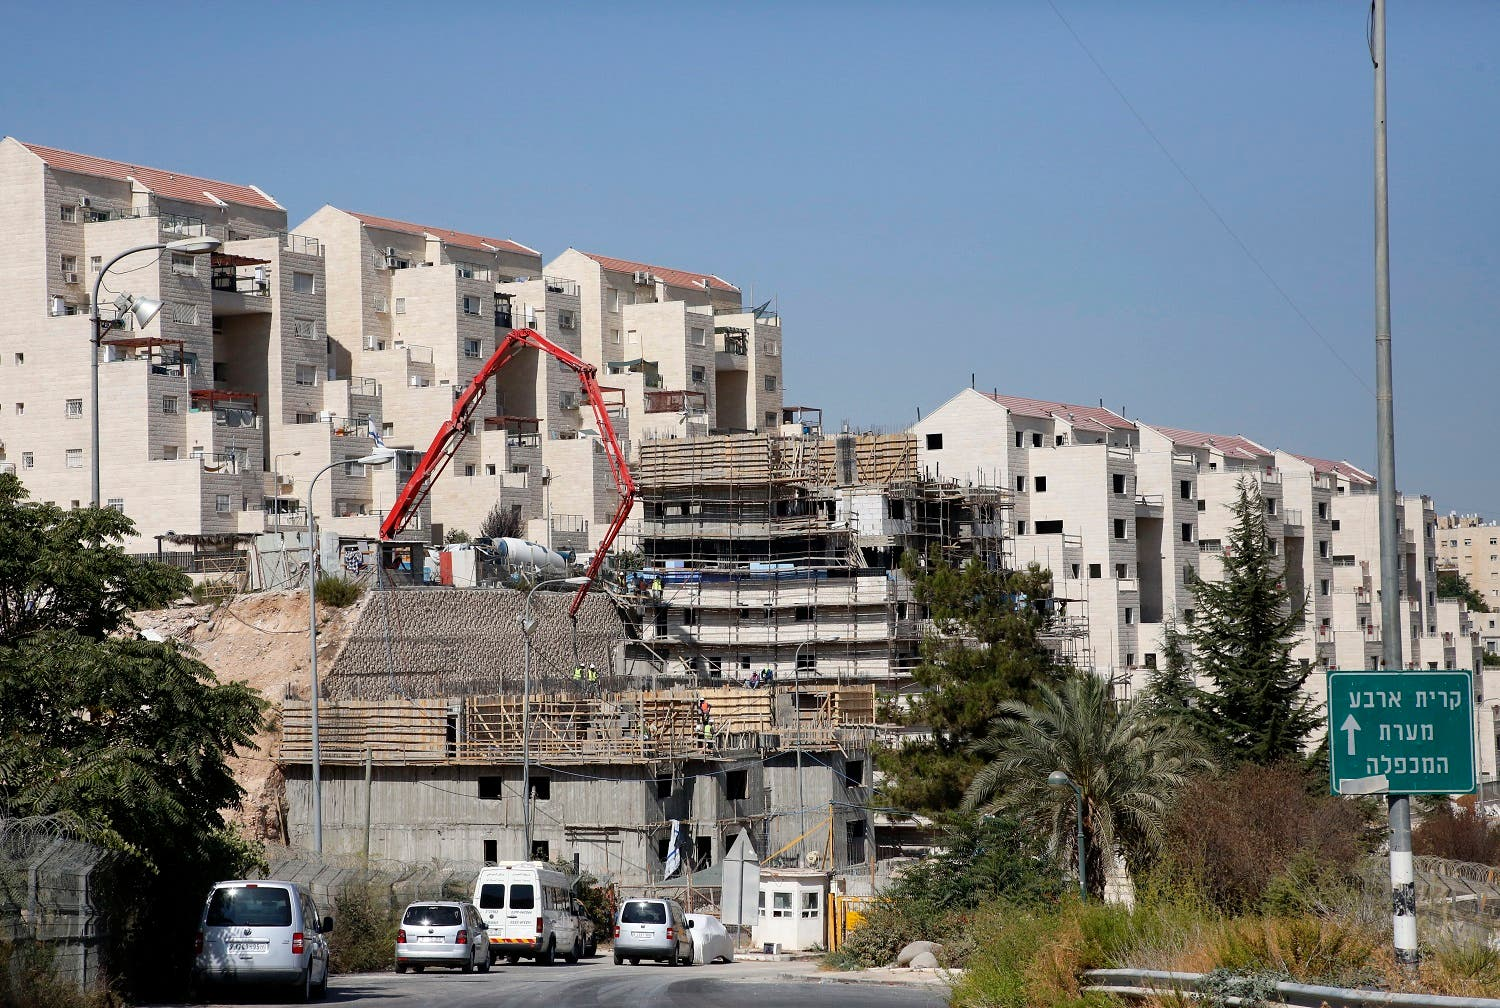 Construction workers building new houses in the Israeli settlment of Kiryat Arba, east the West Bank town of Hebron. (File photo: AFP)